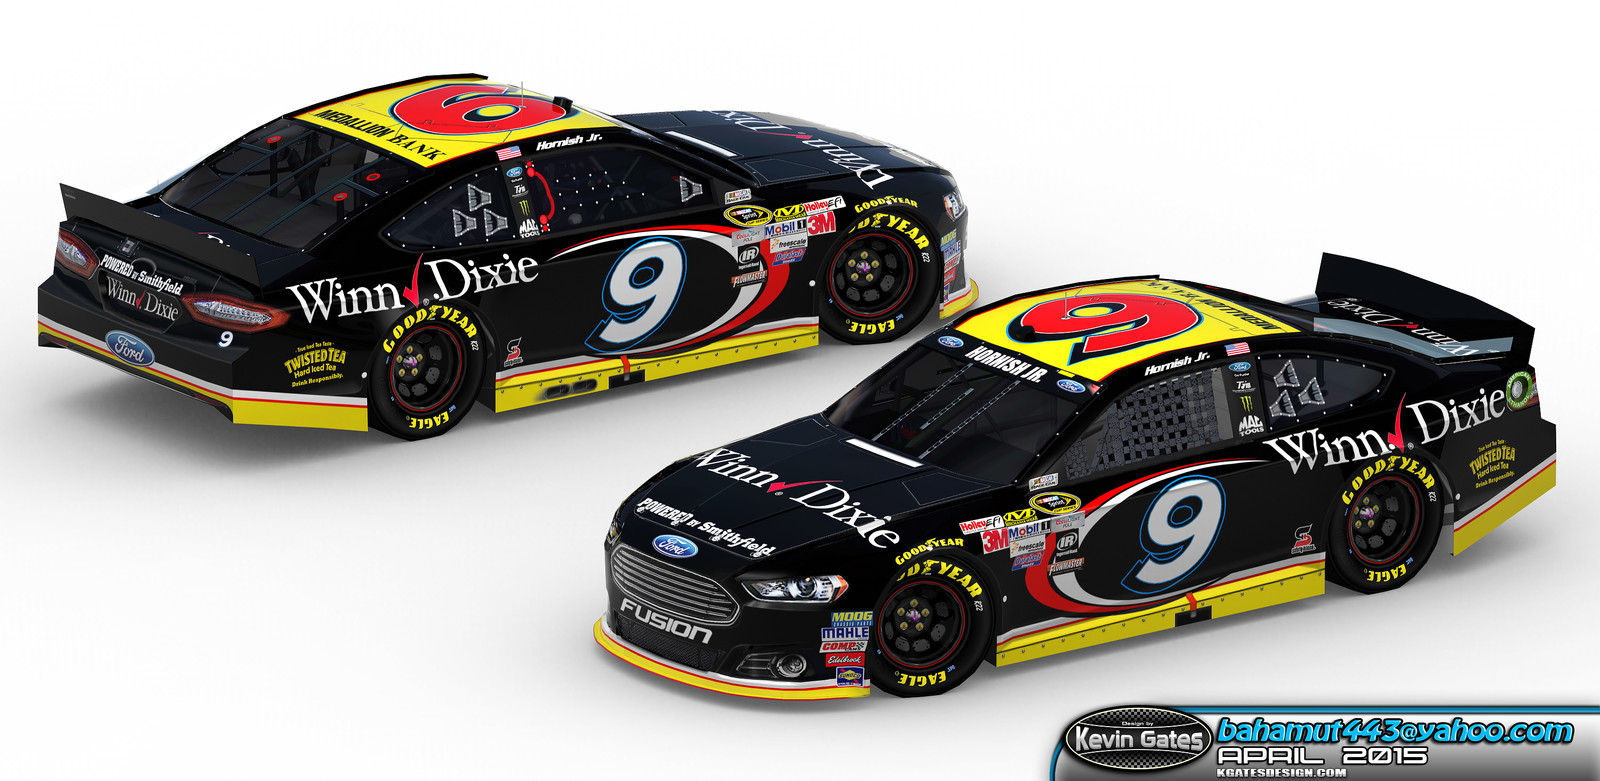 Original Autodesk 3DS Max render of the finalized 2015 #9 Winn-Dixie Ford Fusion driven by NASCAR Sprint Cup Series driver Sam Hornish Jr. of Richard Petty Motorsports